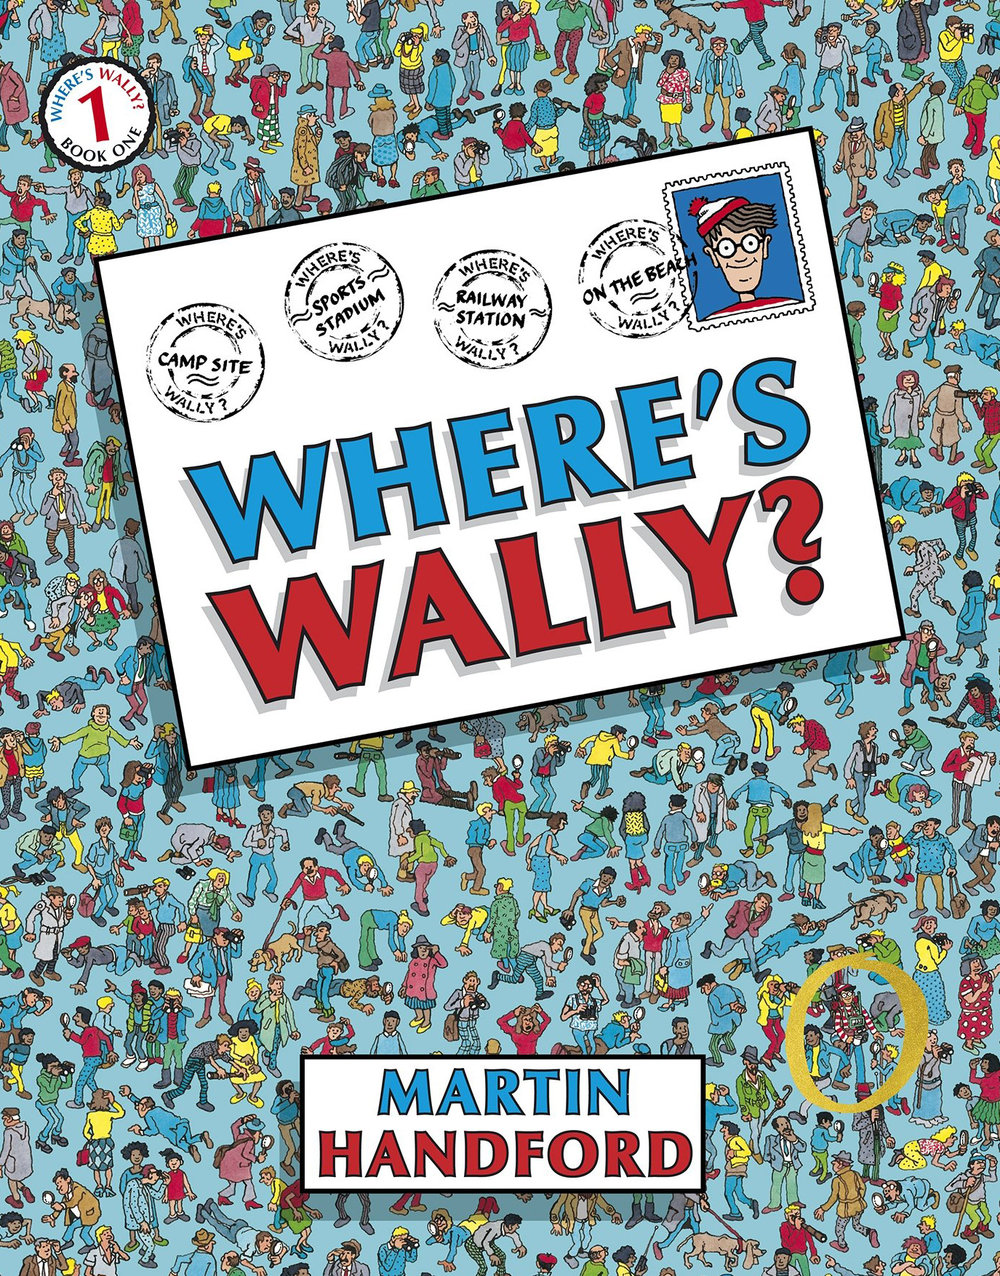 WHERE'S WALLY? (R160)   The original book which kick-started the worldwide Wally phenomenon! Search for Wally and his friends as they hike round the world – on the beach, at the train station, at sea...they're fiendishly hidden in every intricately-detailed scene and there are lots of other things to look for too. Hours of fun and games await.  While enjoying this book and searching for Wally and his friends, important developmental skills such as visual perception, concentration, attention span and cognition are promoted.  Suitable for ages 5 years and older.